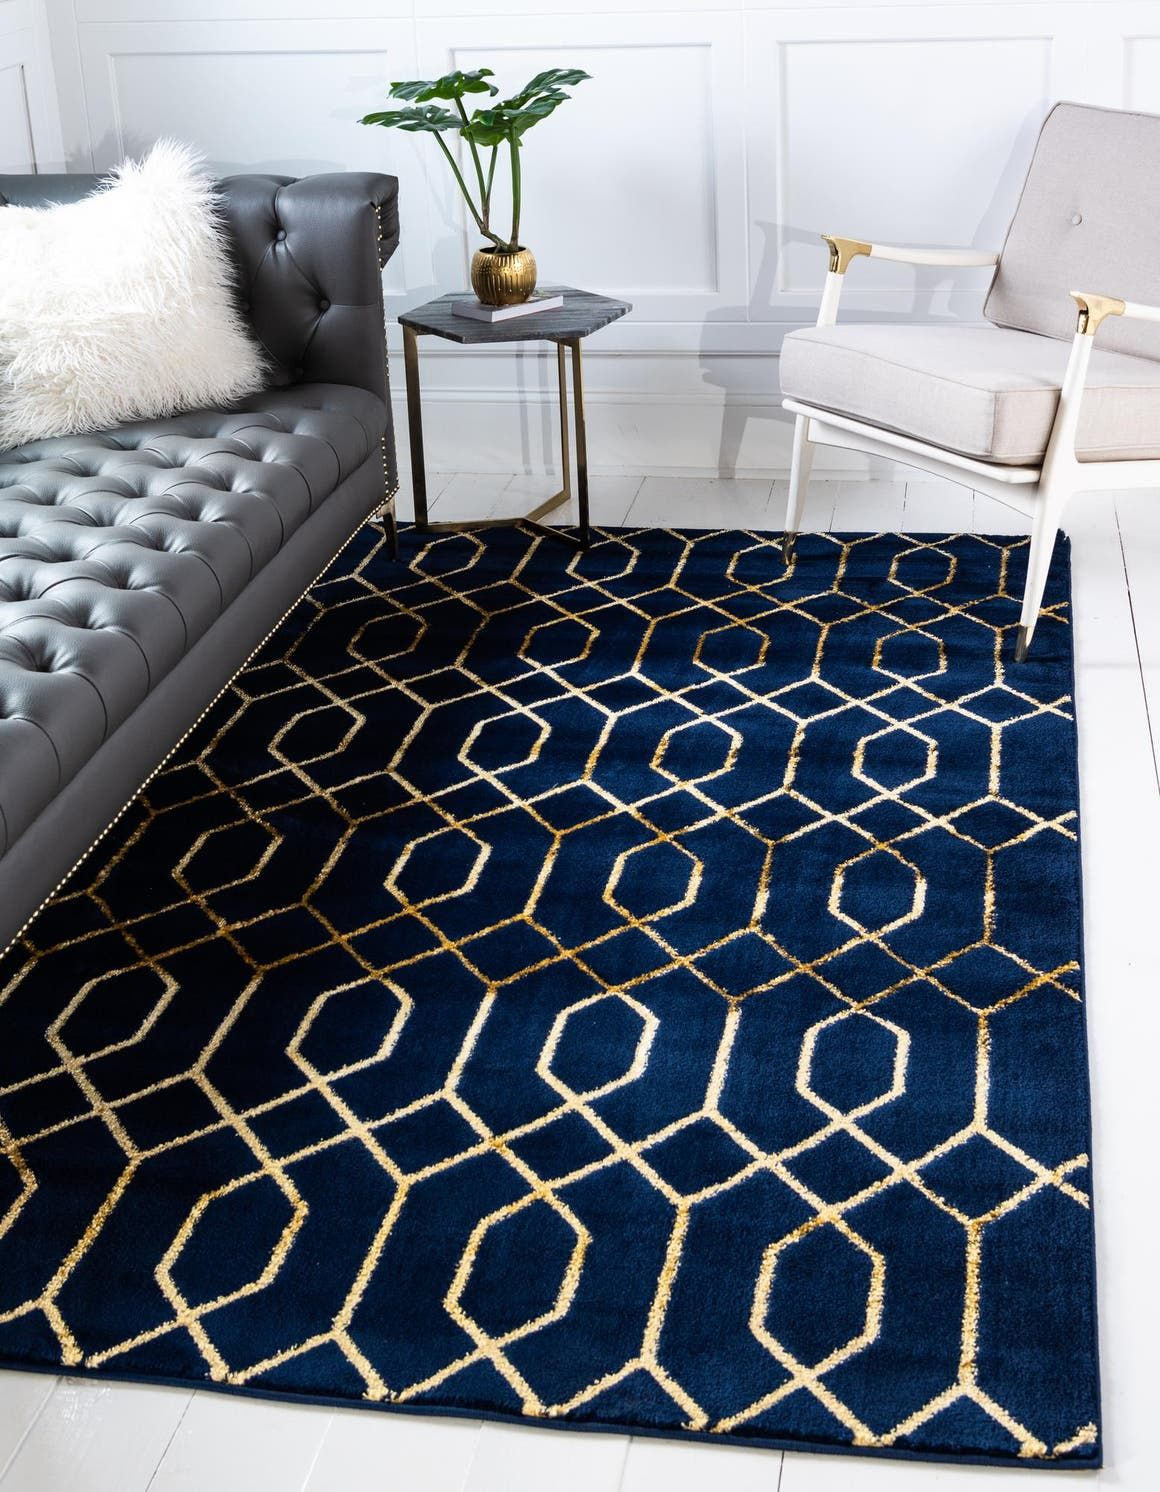 Navy Blue Gold Marilyn Monroe 2 X 3 Marilyn Monroe Glam Trellis Rug Area Rugs Rugs Com Navy Bedrooms Navy Living Rooms Luxury Rug #navy #blue #and #gold #living #room #ideas